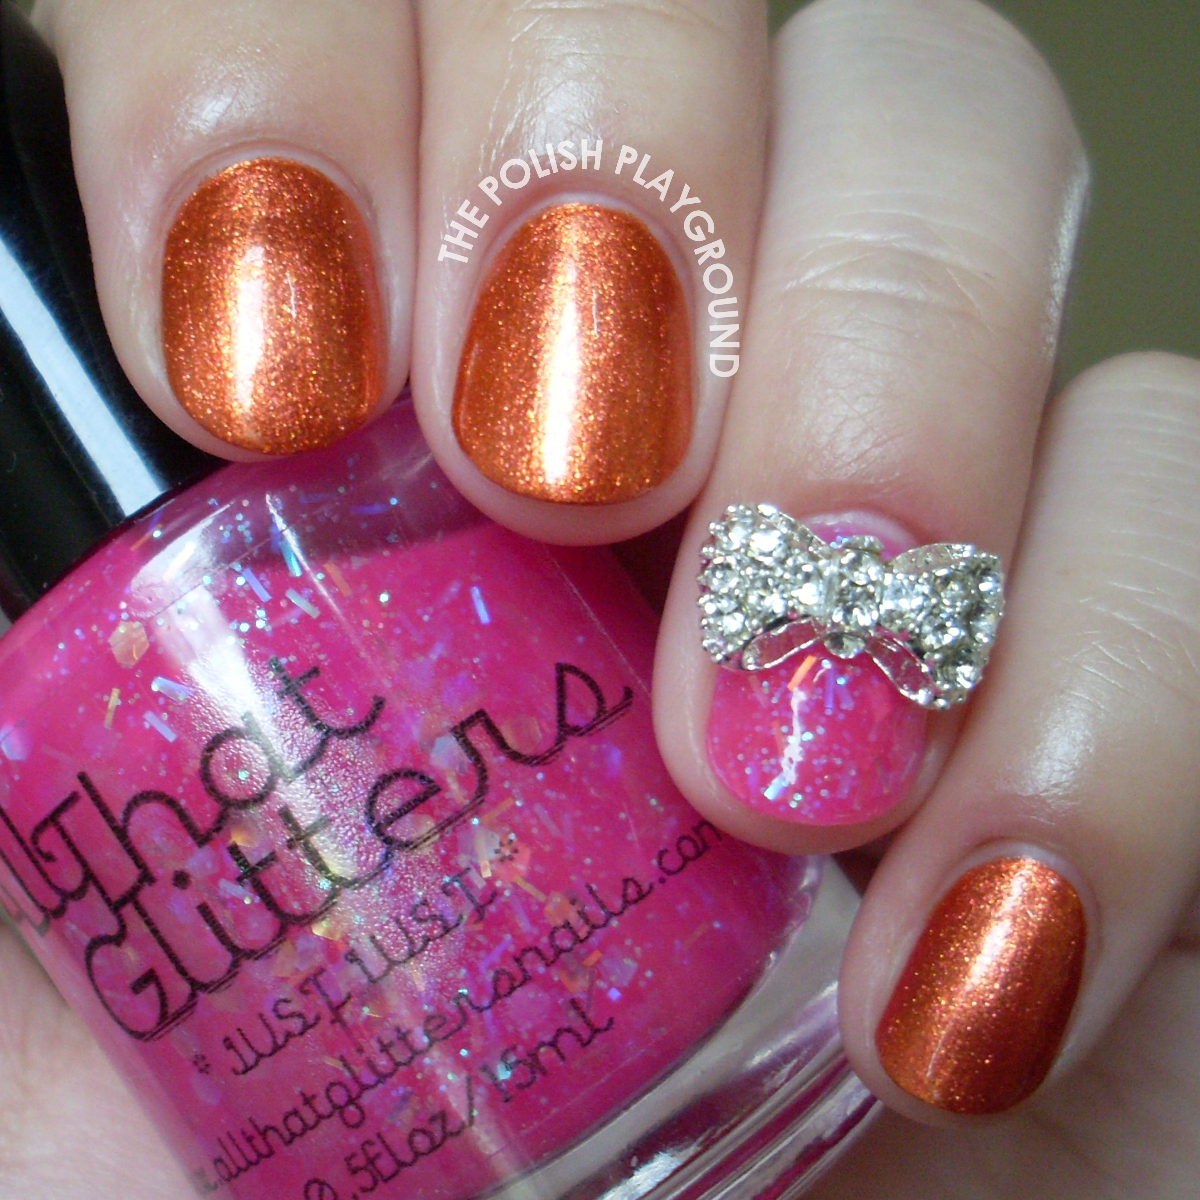 Burnt Reddish Orange Bronze Summer to Fall Transitional Polish with Bow Stud Nail Art